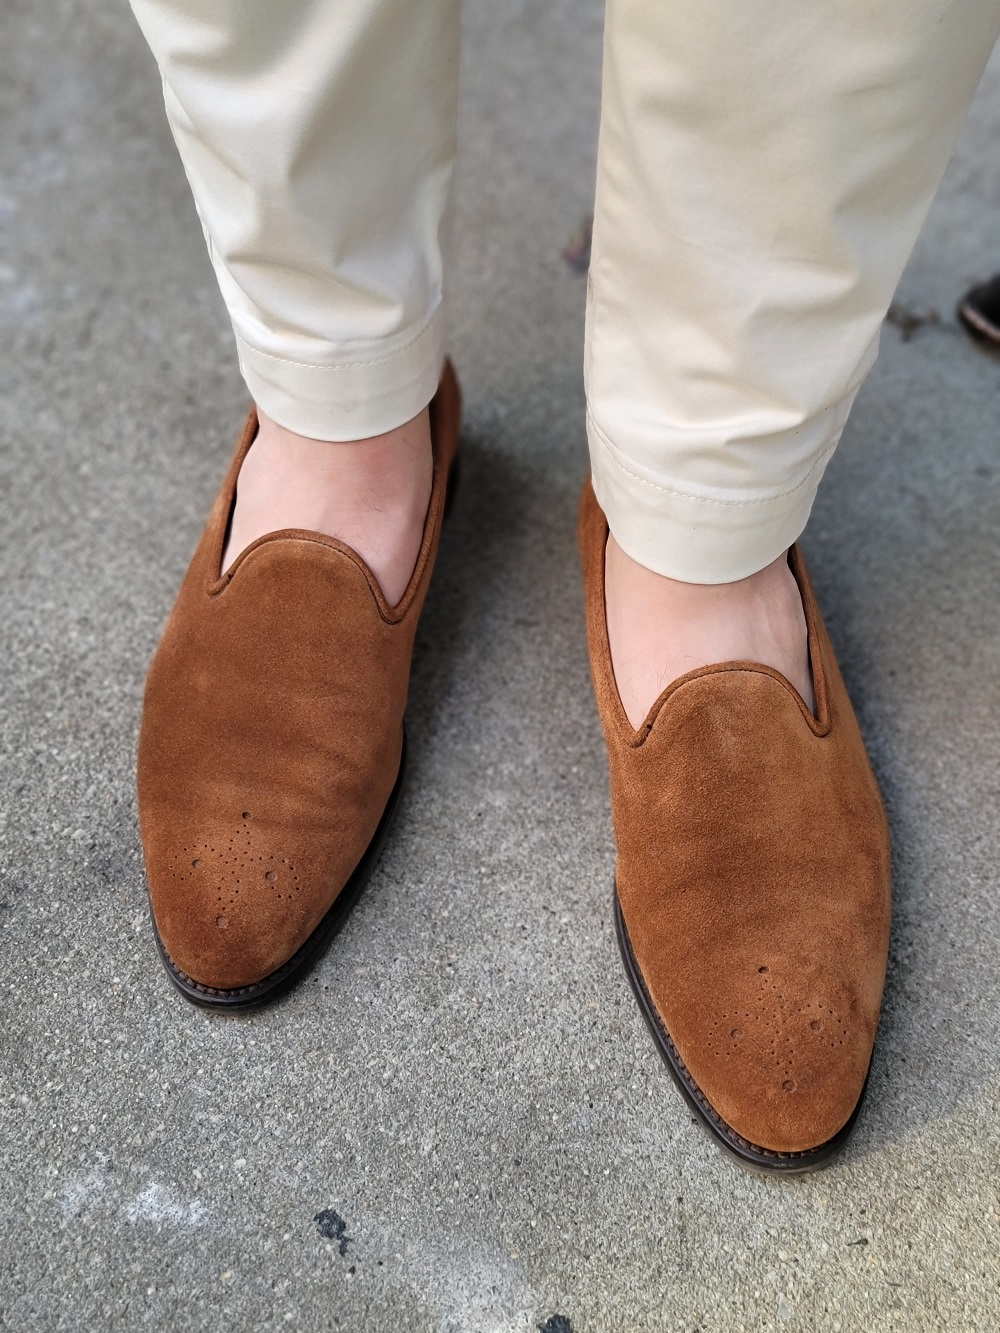 Going Sockless - Yes or No?